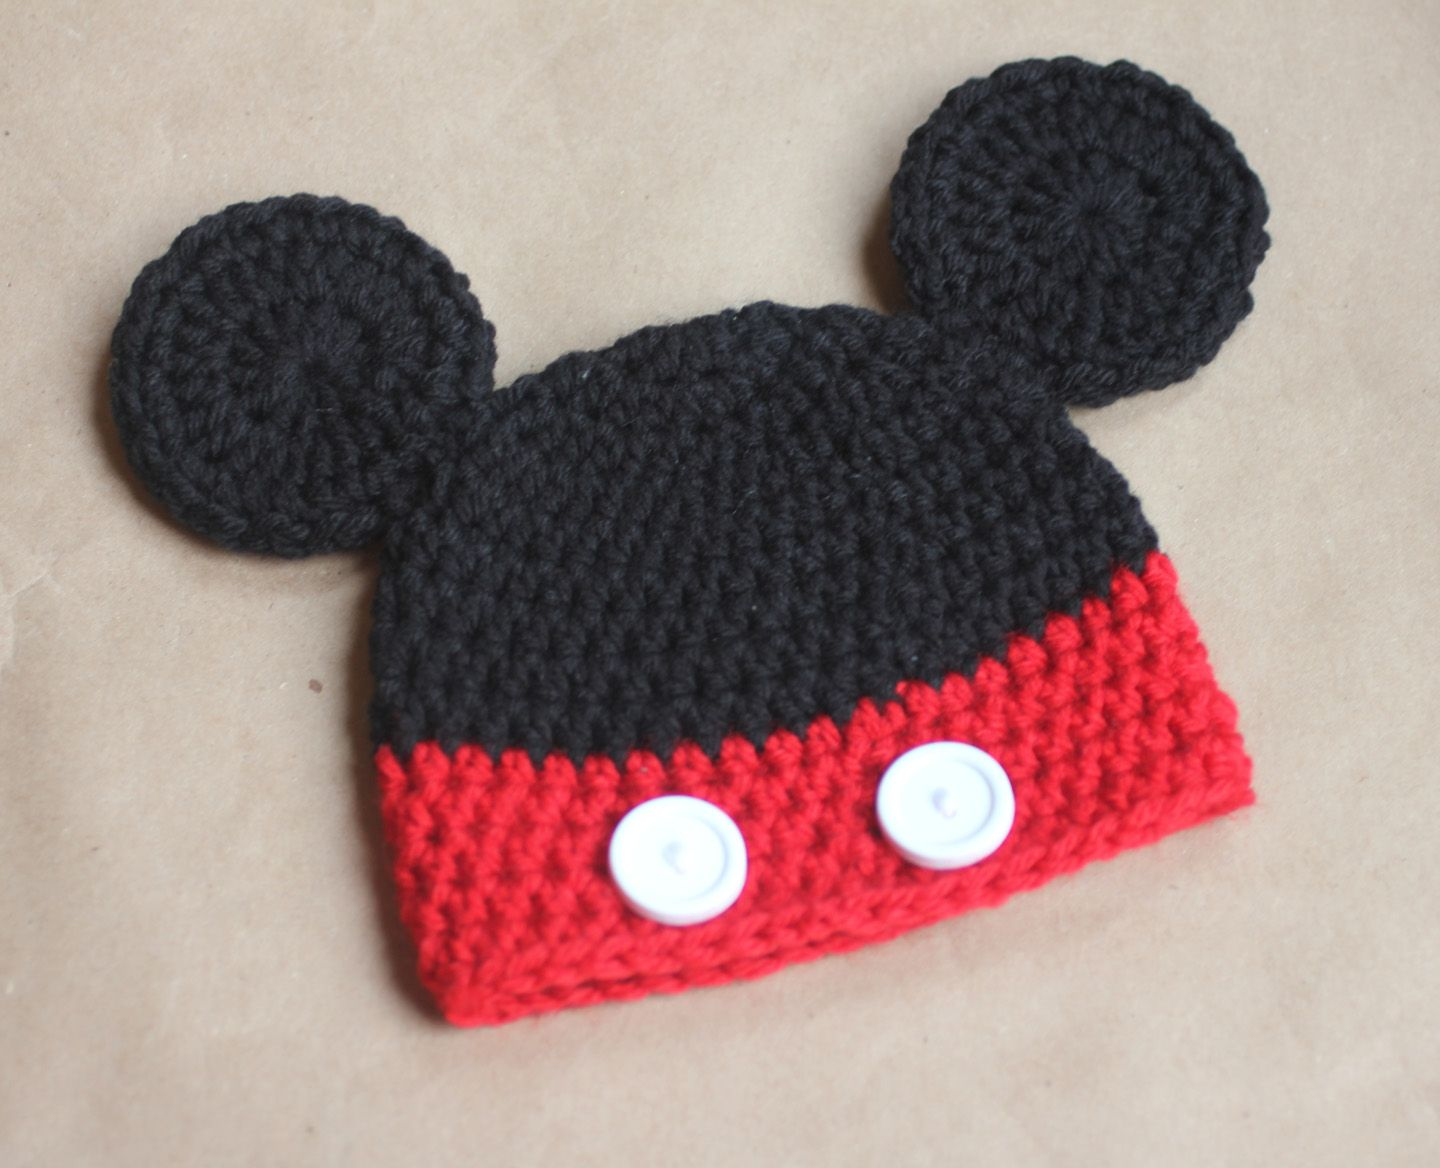 Mickey and Minnie Mouse Crochet Hat Pattern | Baby stuff | Pinterest ...